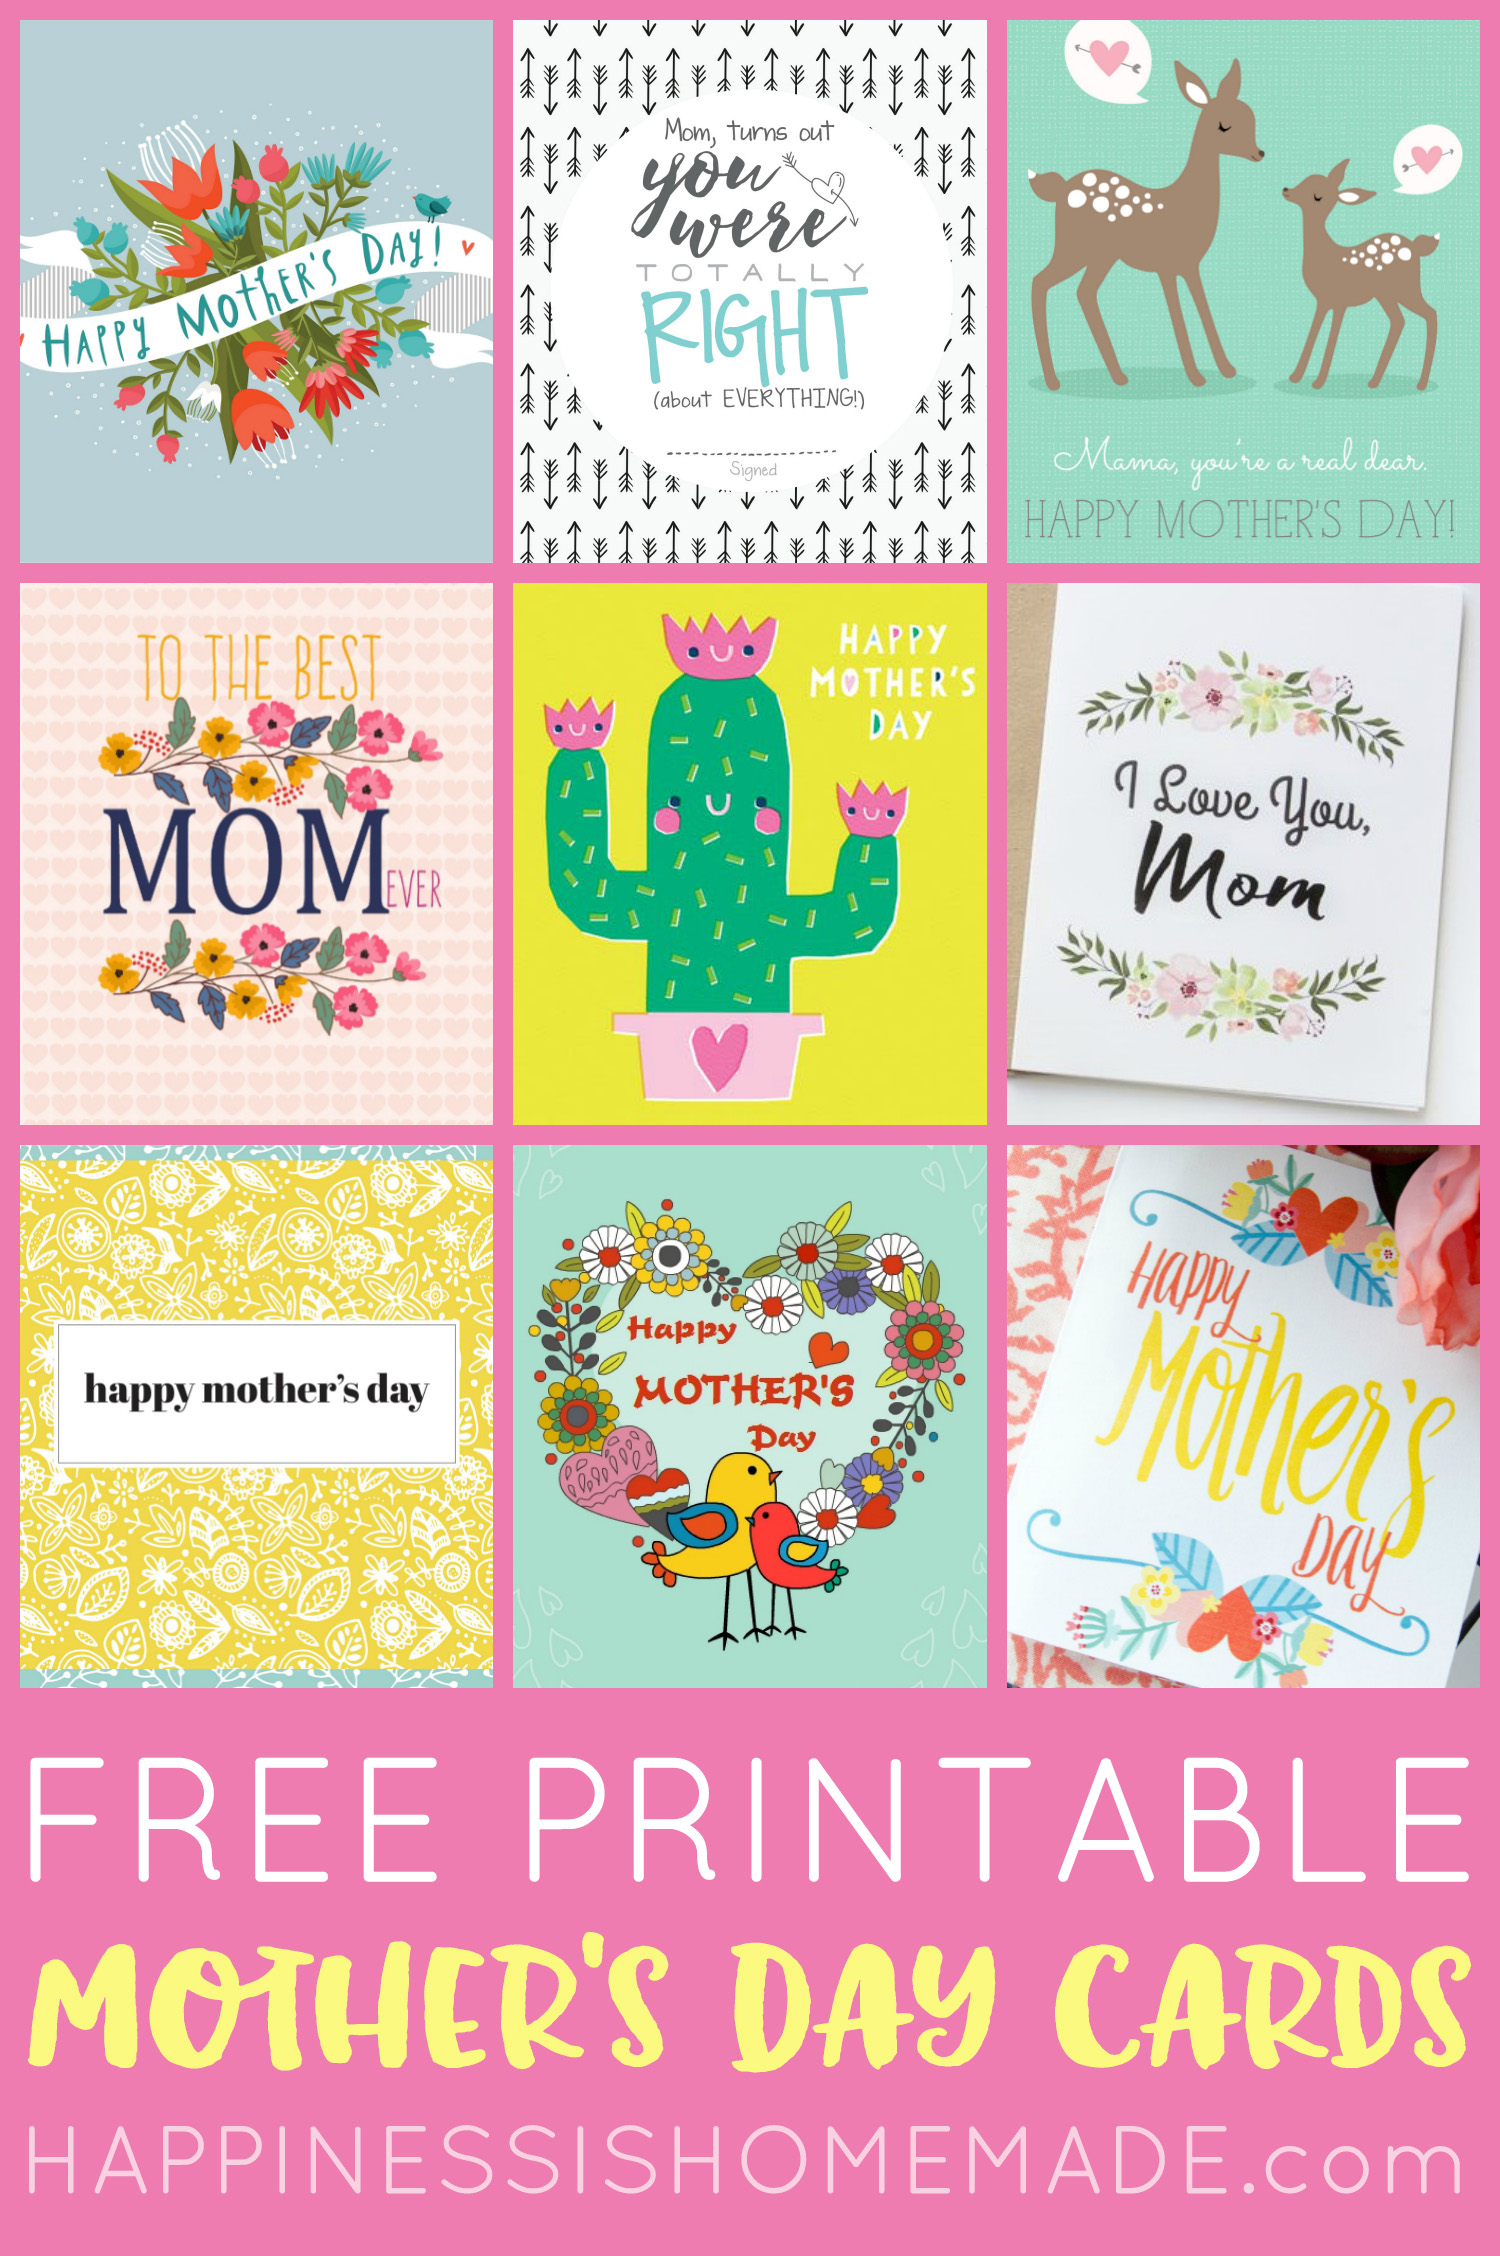 image regarding Happy Mothers Day Printable Cards referred to as Cost-free Printable Moms Working day Playing cards - Pleasure is Handmade